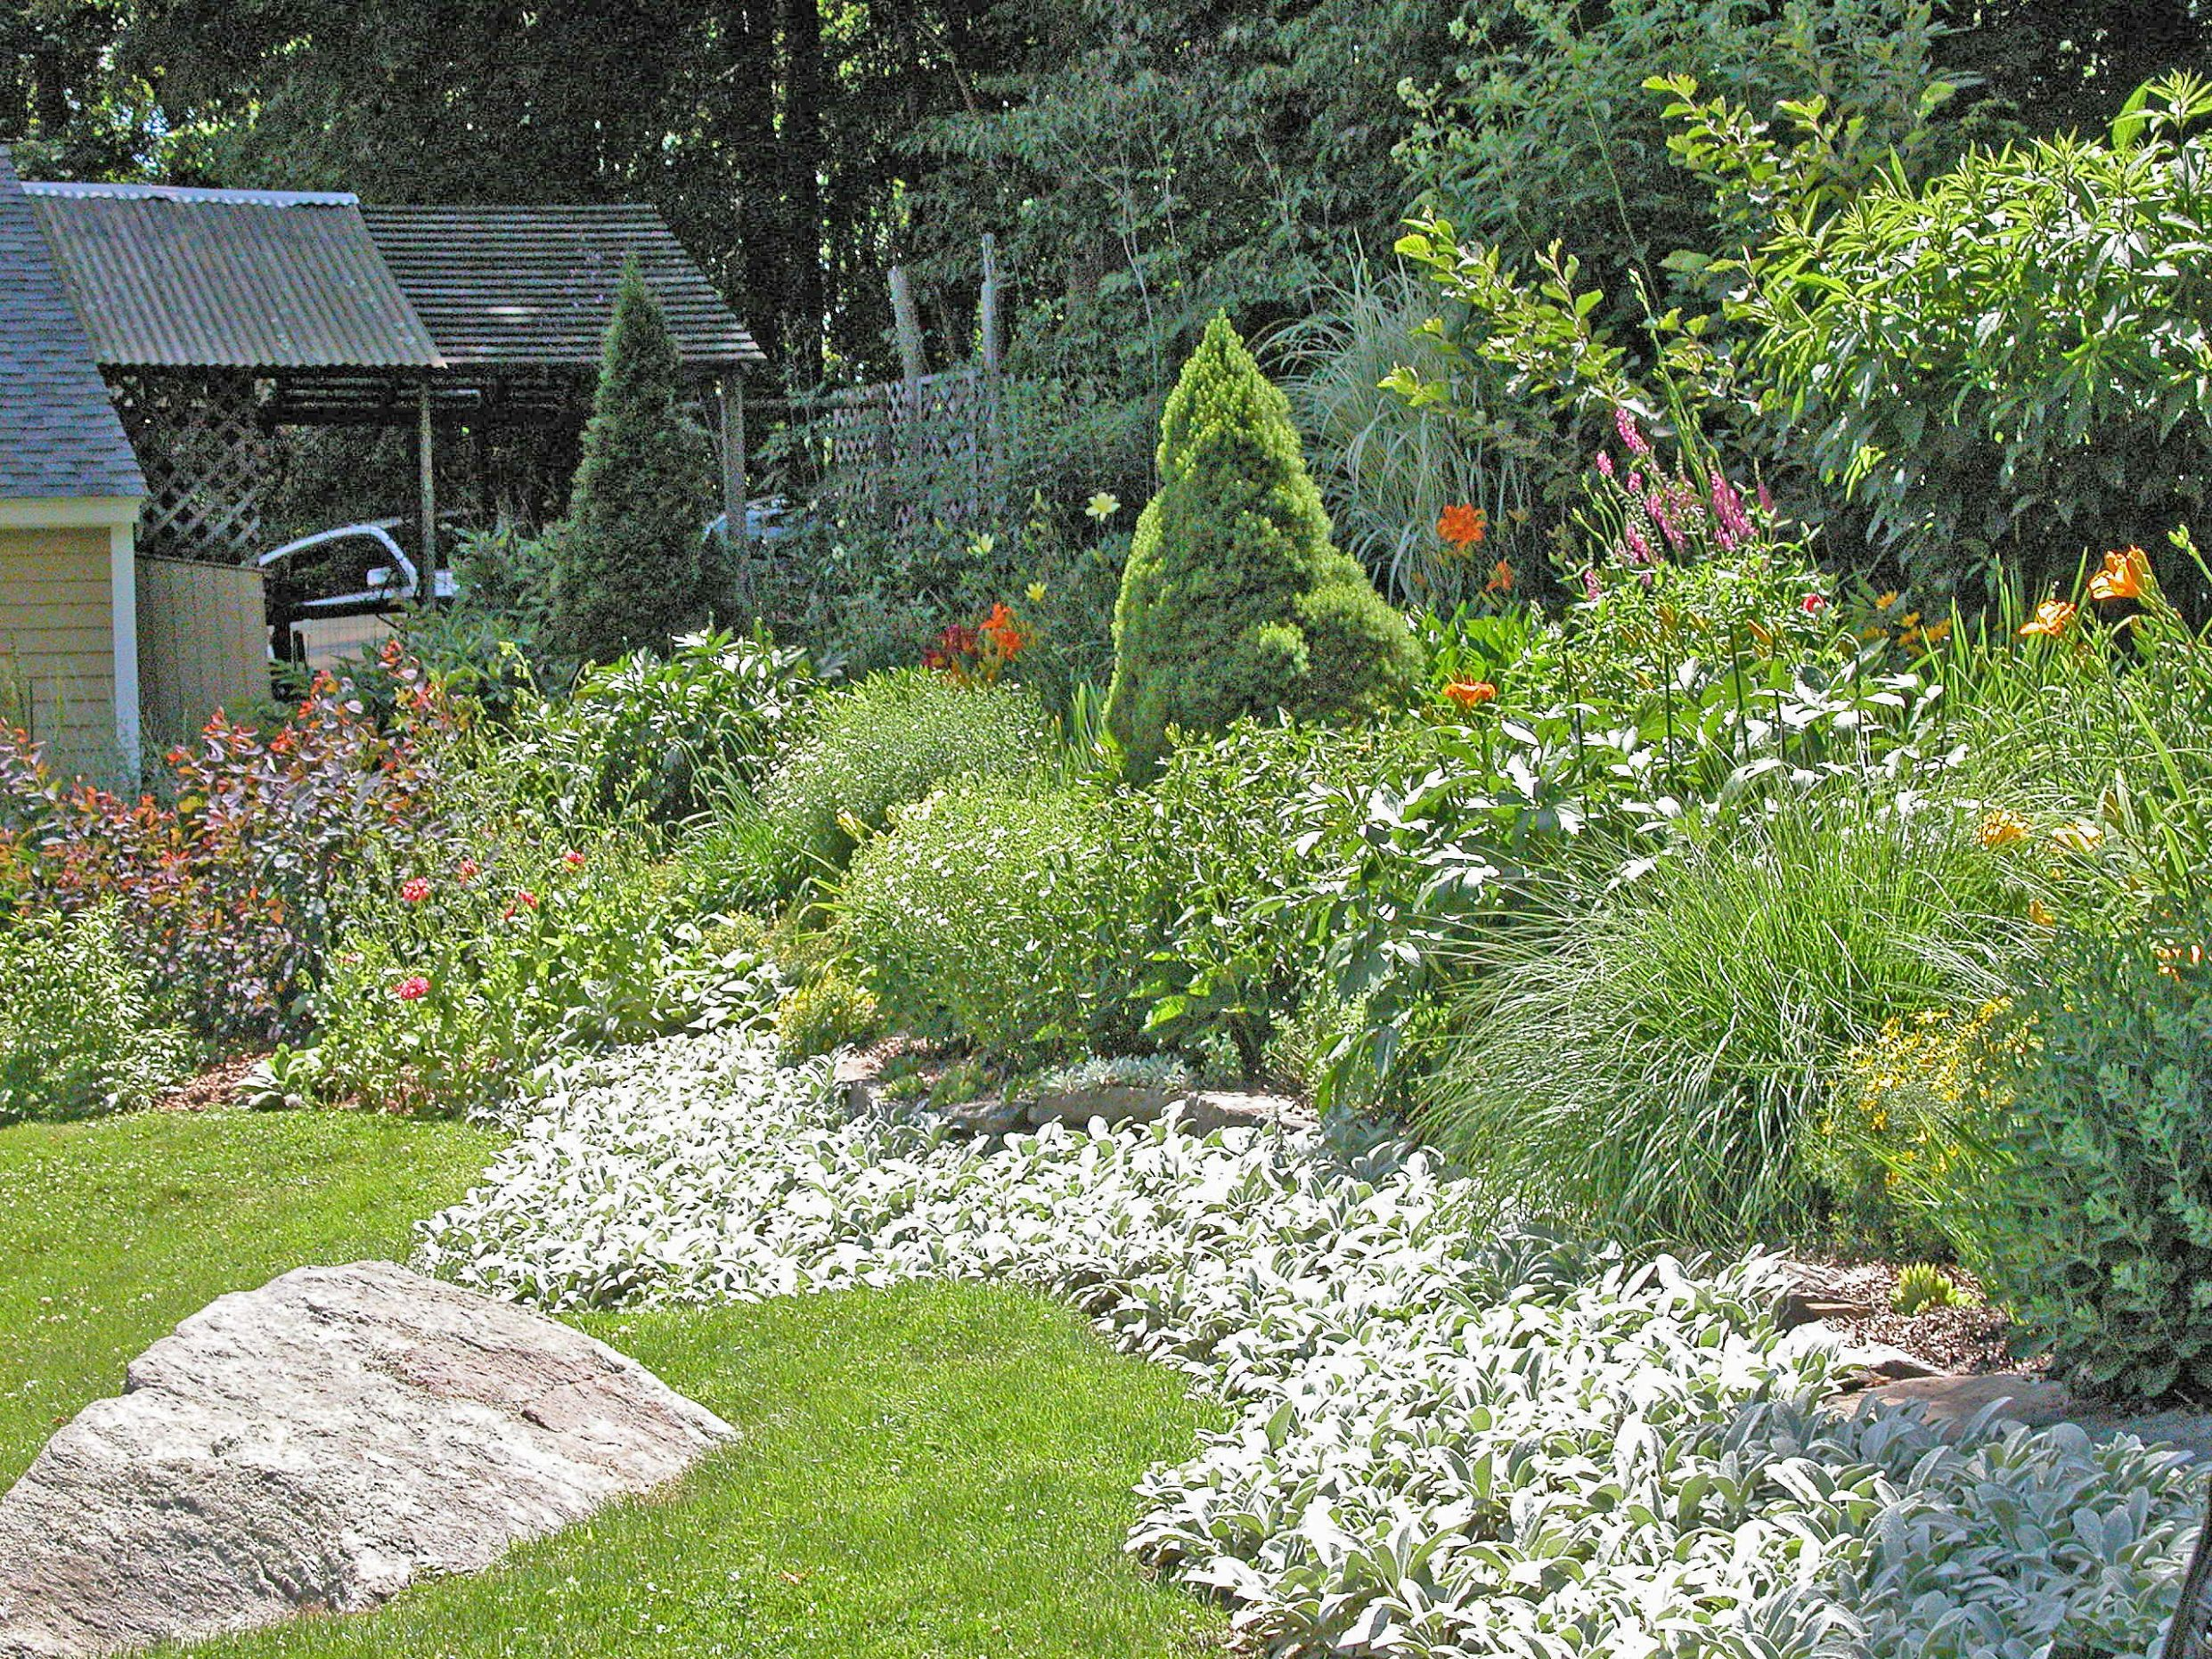 9 Hillside Landscaping Ideas to Maximize Your Yard